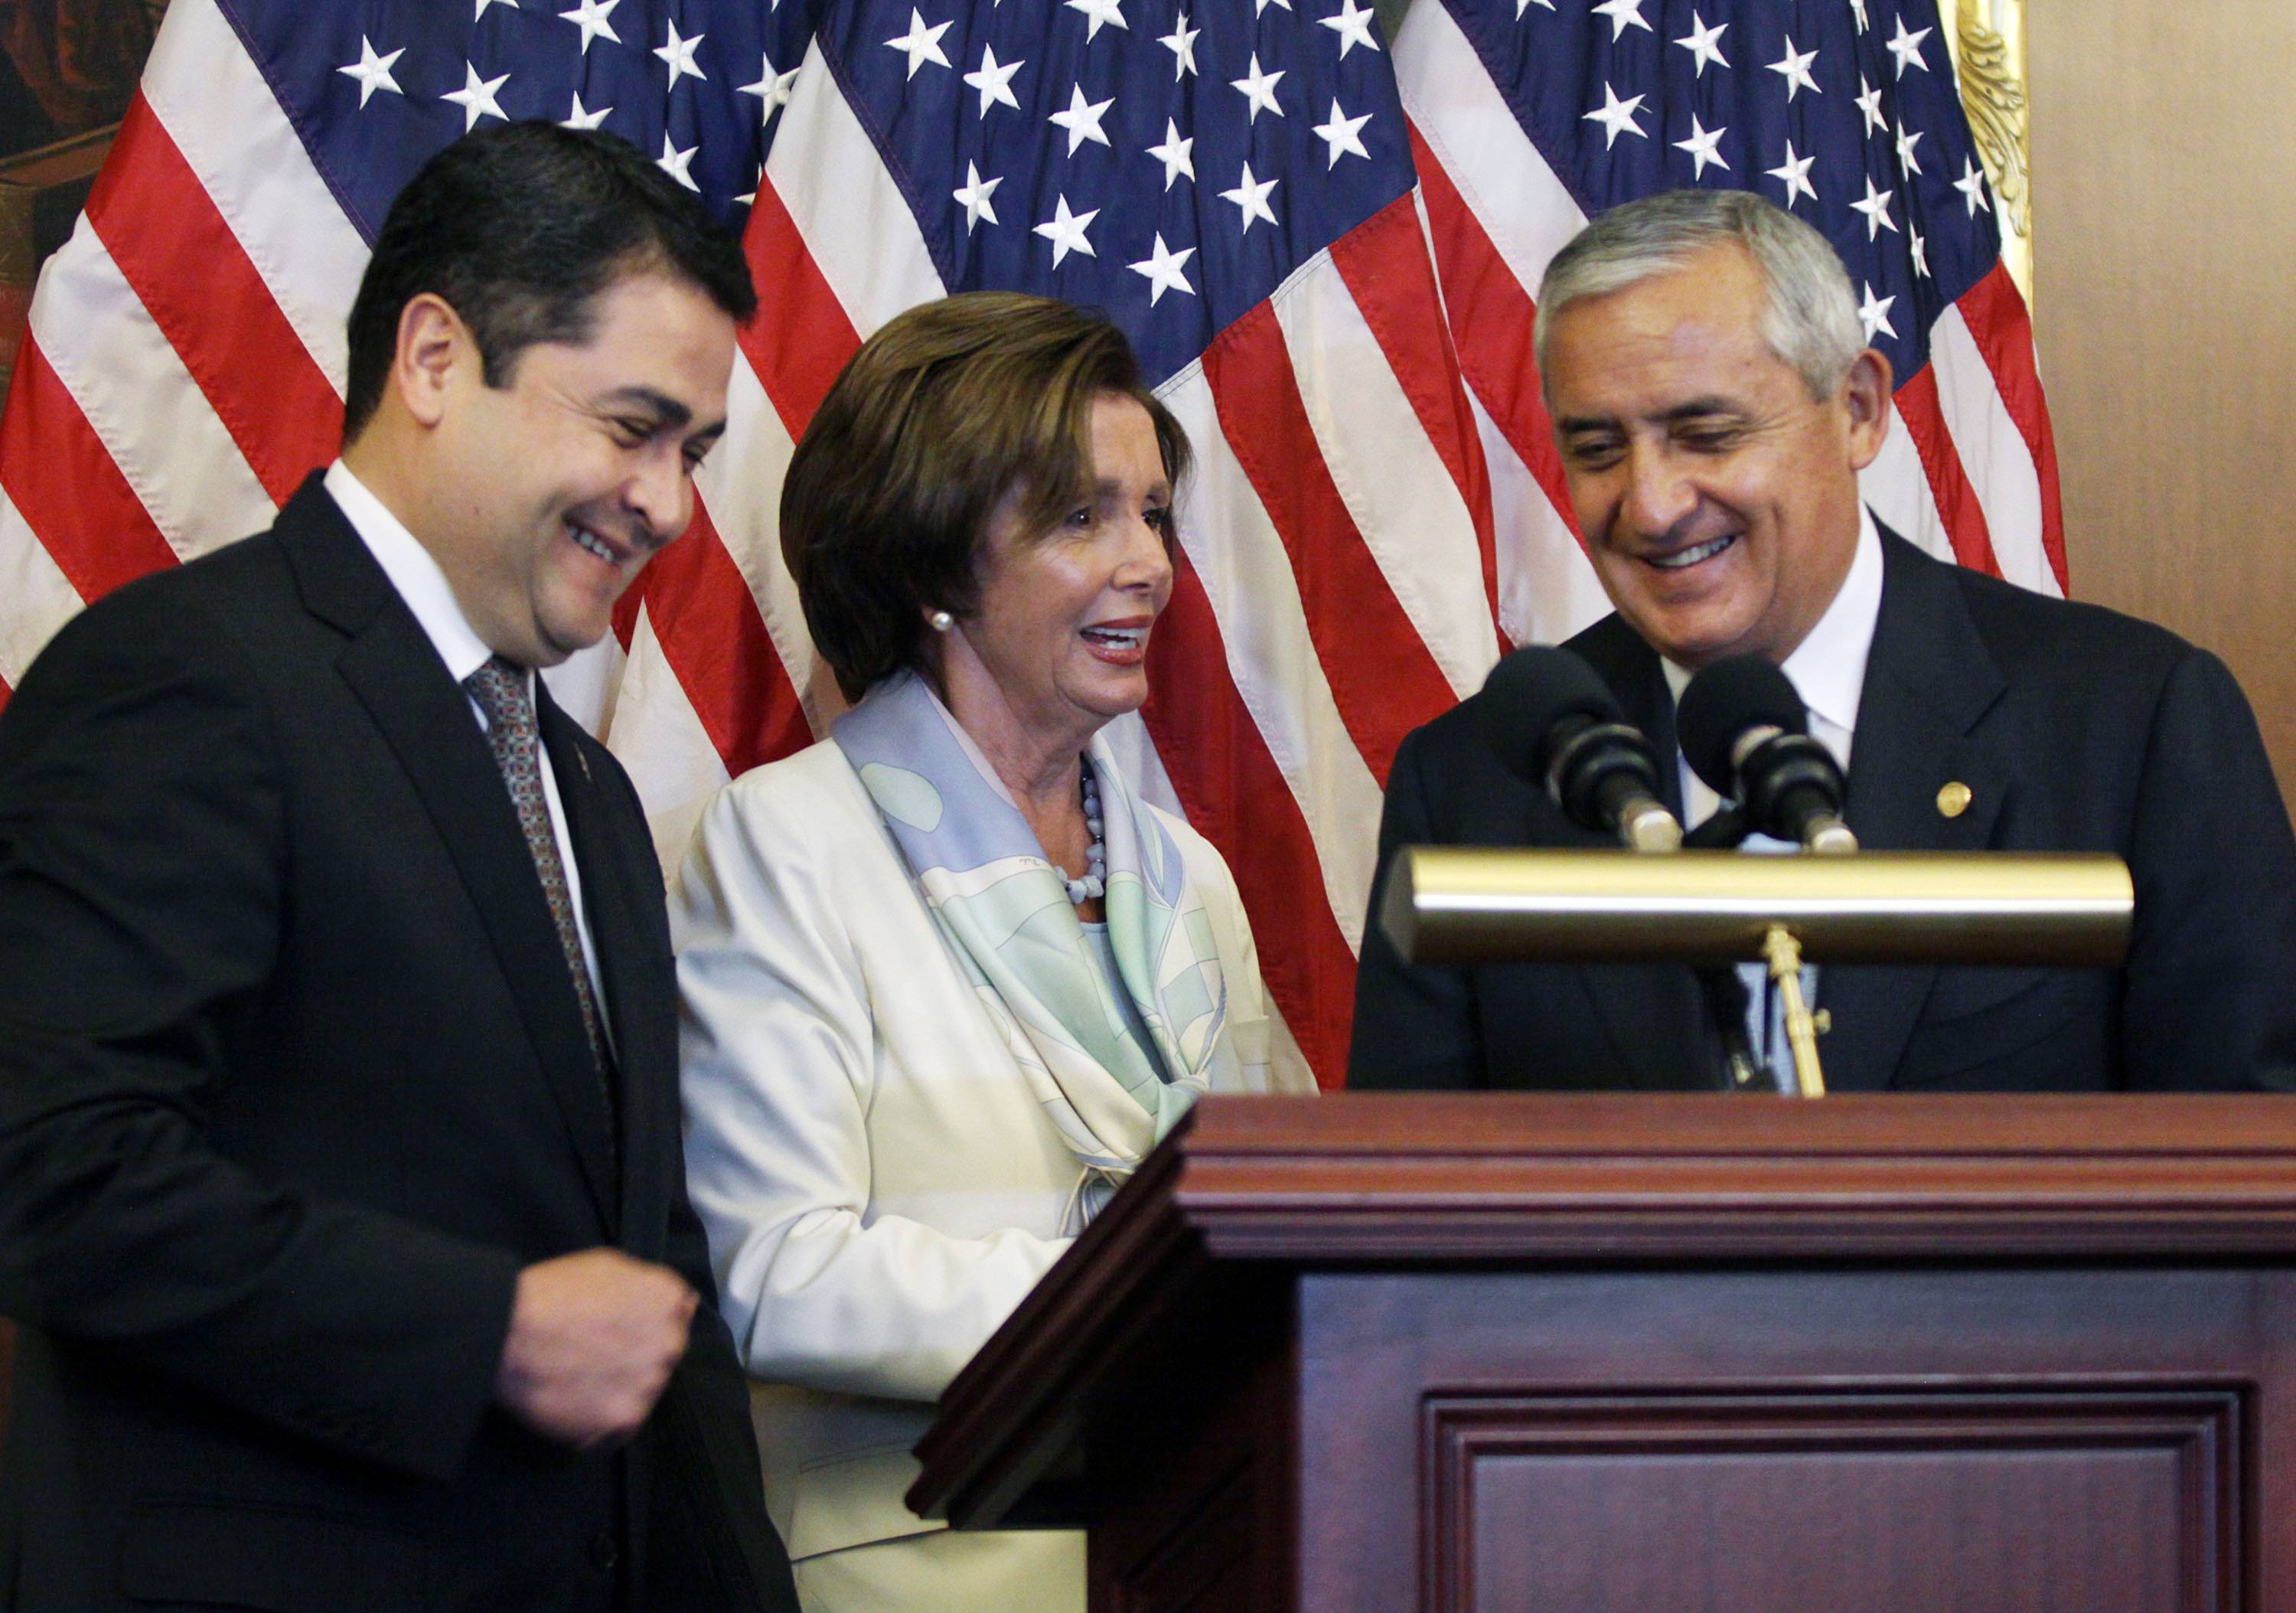 House Democratic Leader Nancy Pelosi, center, is seen with Guatemalan President Otto Molina, right, and Honduran President Juan Hernández on Thursday on Capitol Hill in Washington. At the same time, the administration said it is weighing giving refugee status to young people from Honduras.